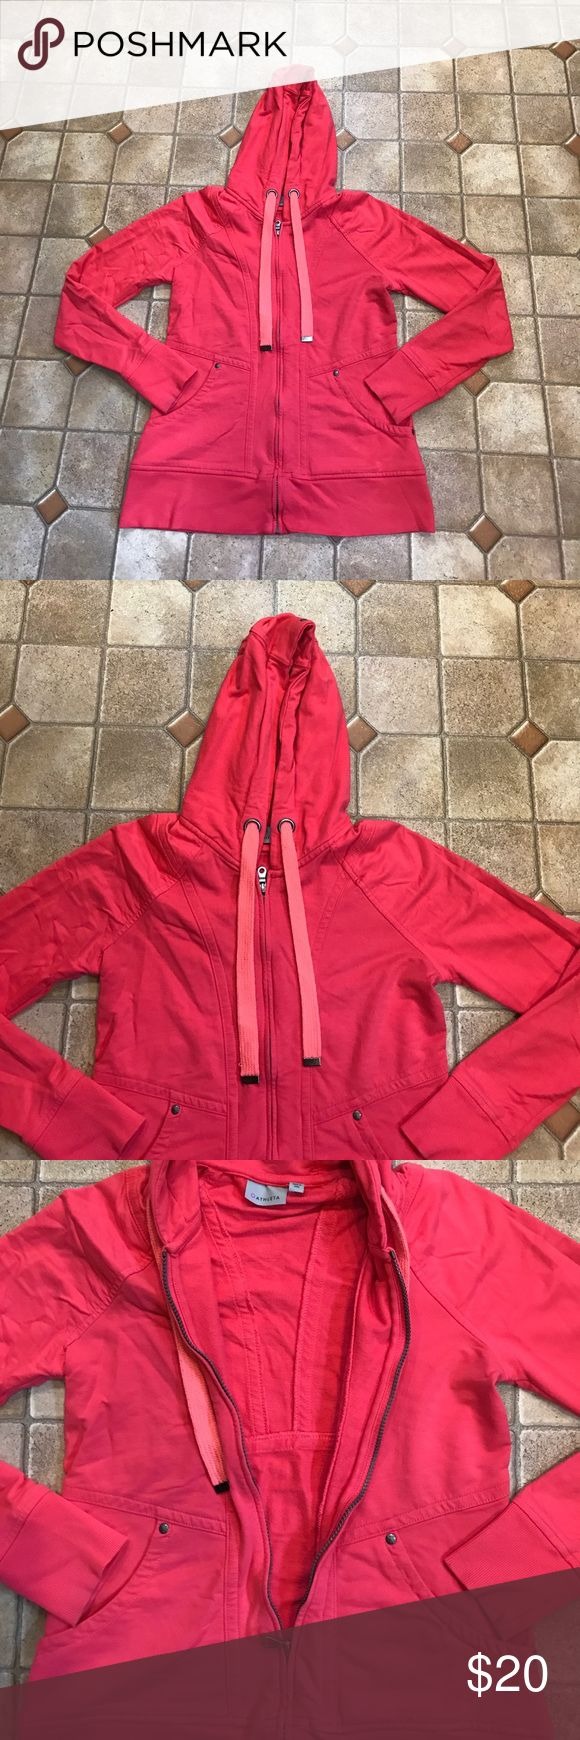 Athleta full pink zip up hoodie Small Women's full zip hoodie sweater size small. Solid pink in color, drawstring hood, long sleeve, excellent used condition- no rips/stains/holes etc. Athleta Sweaters